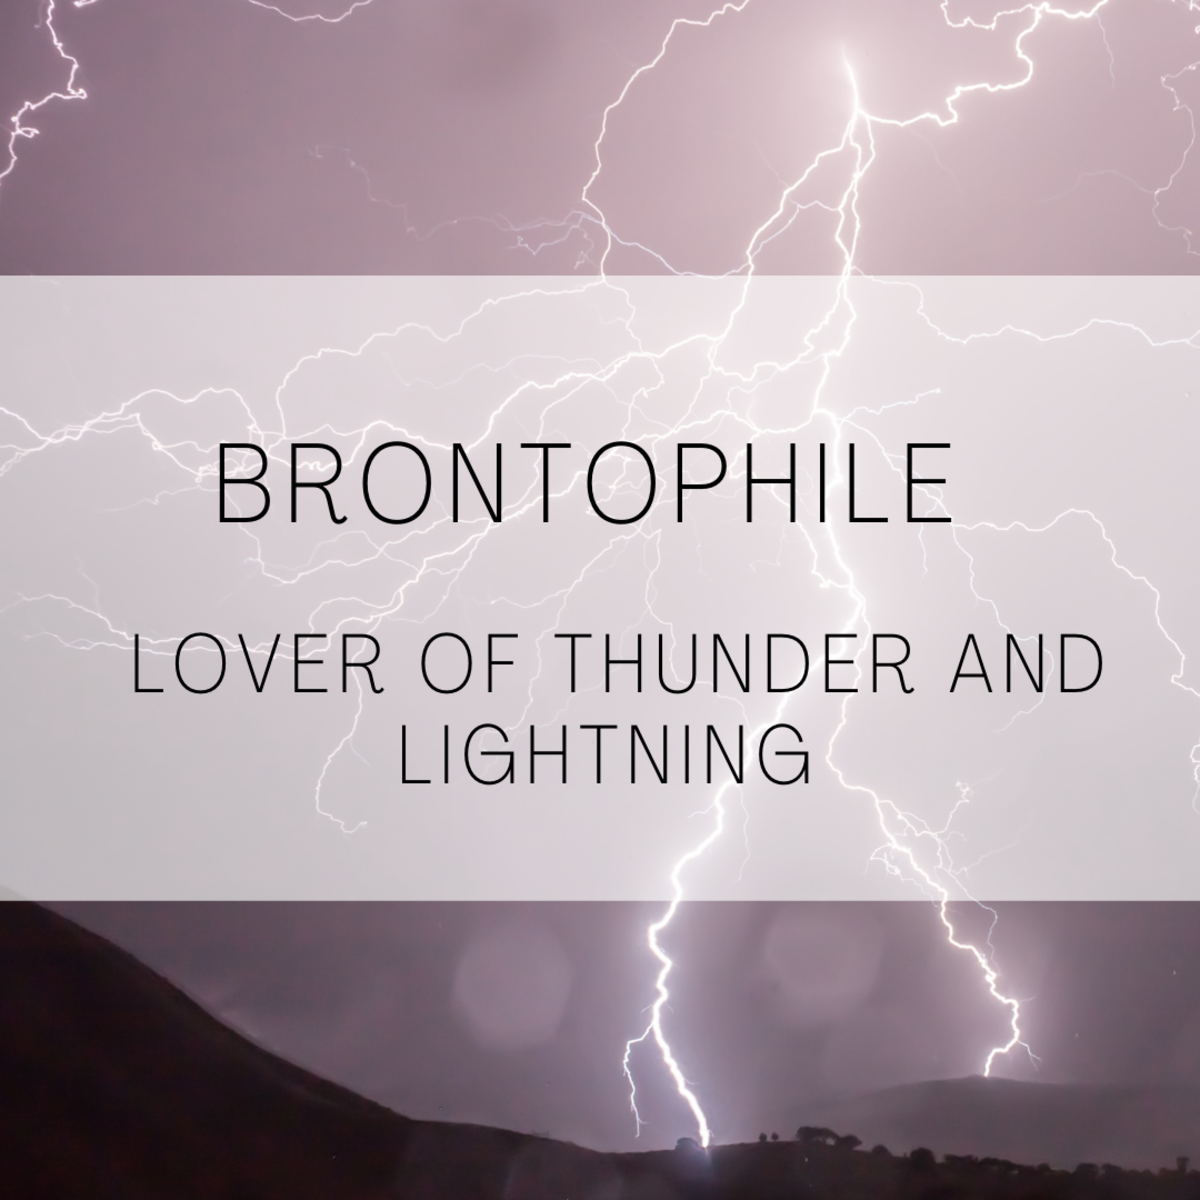 Brontophile, lover of thunder and lightning